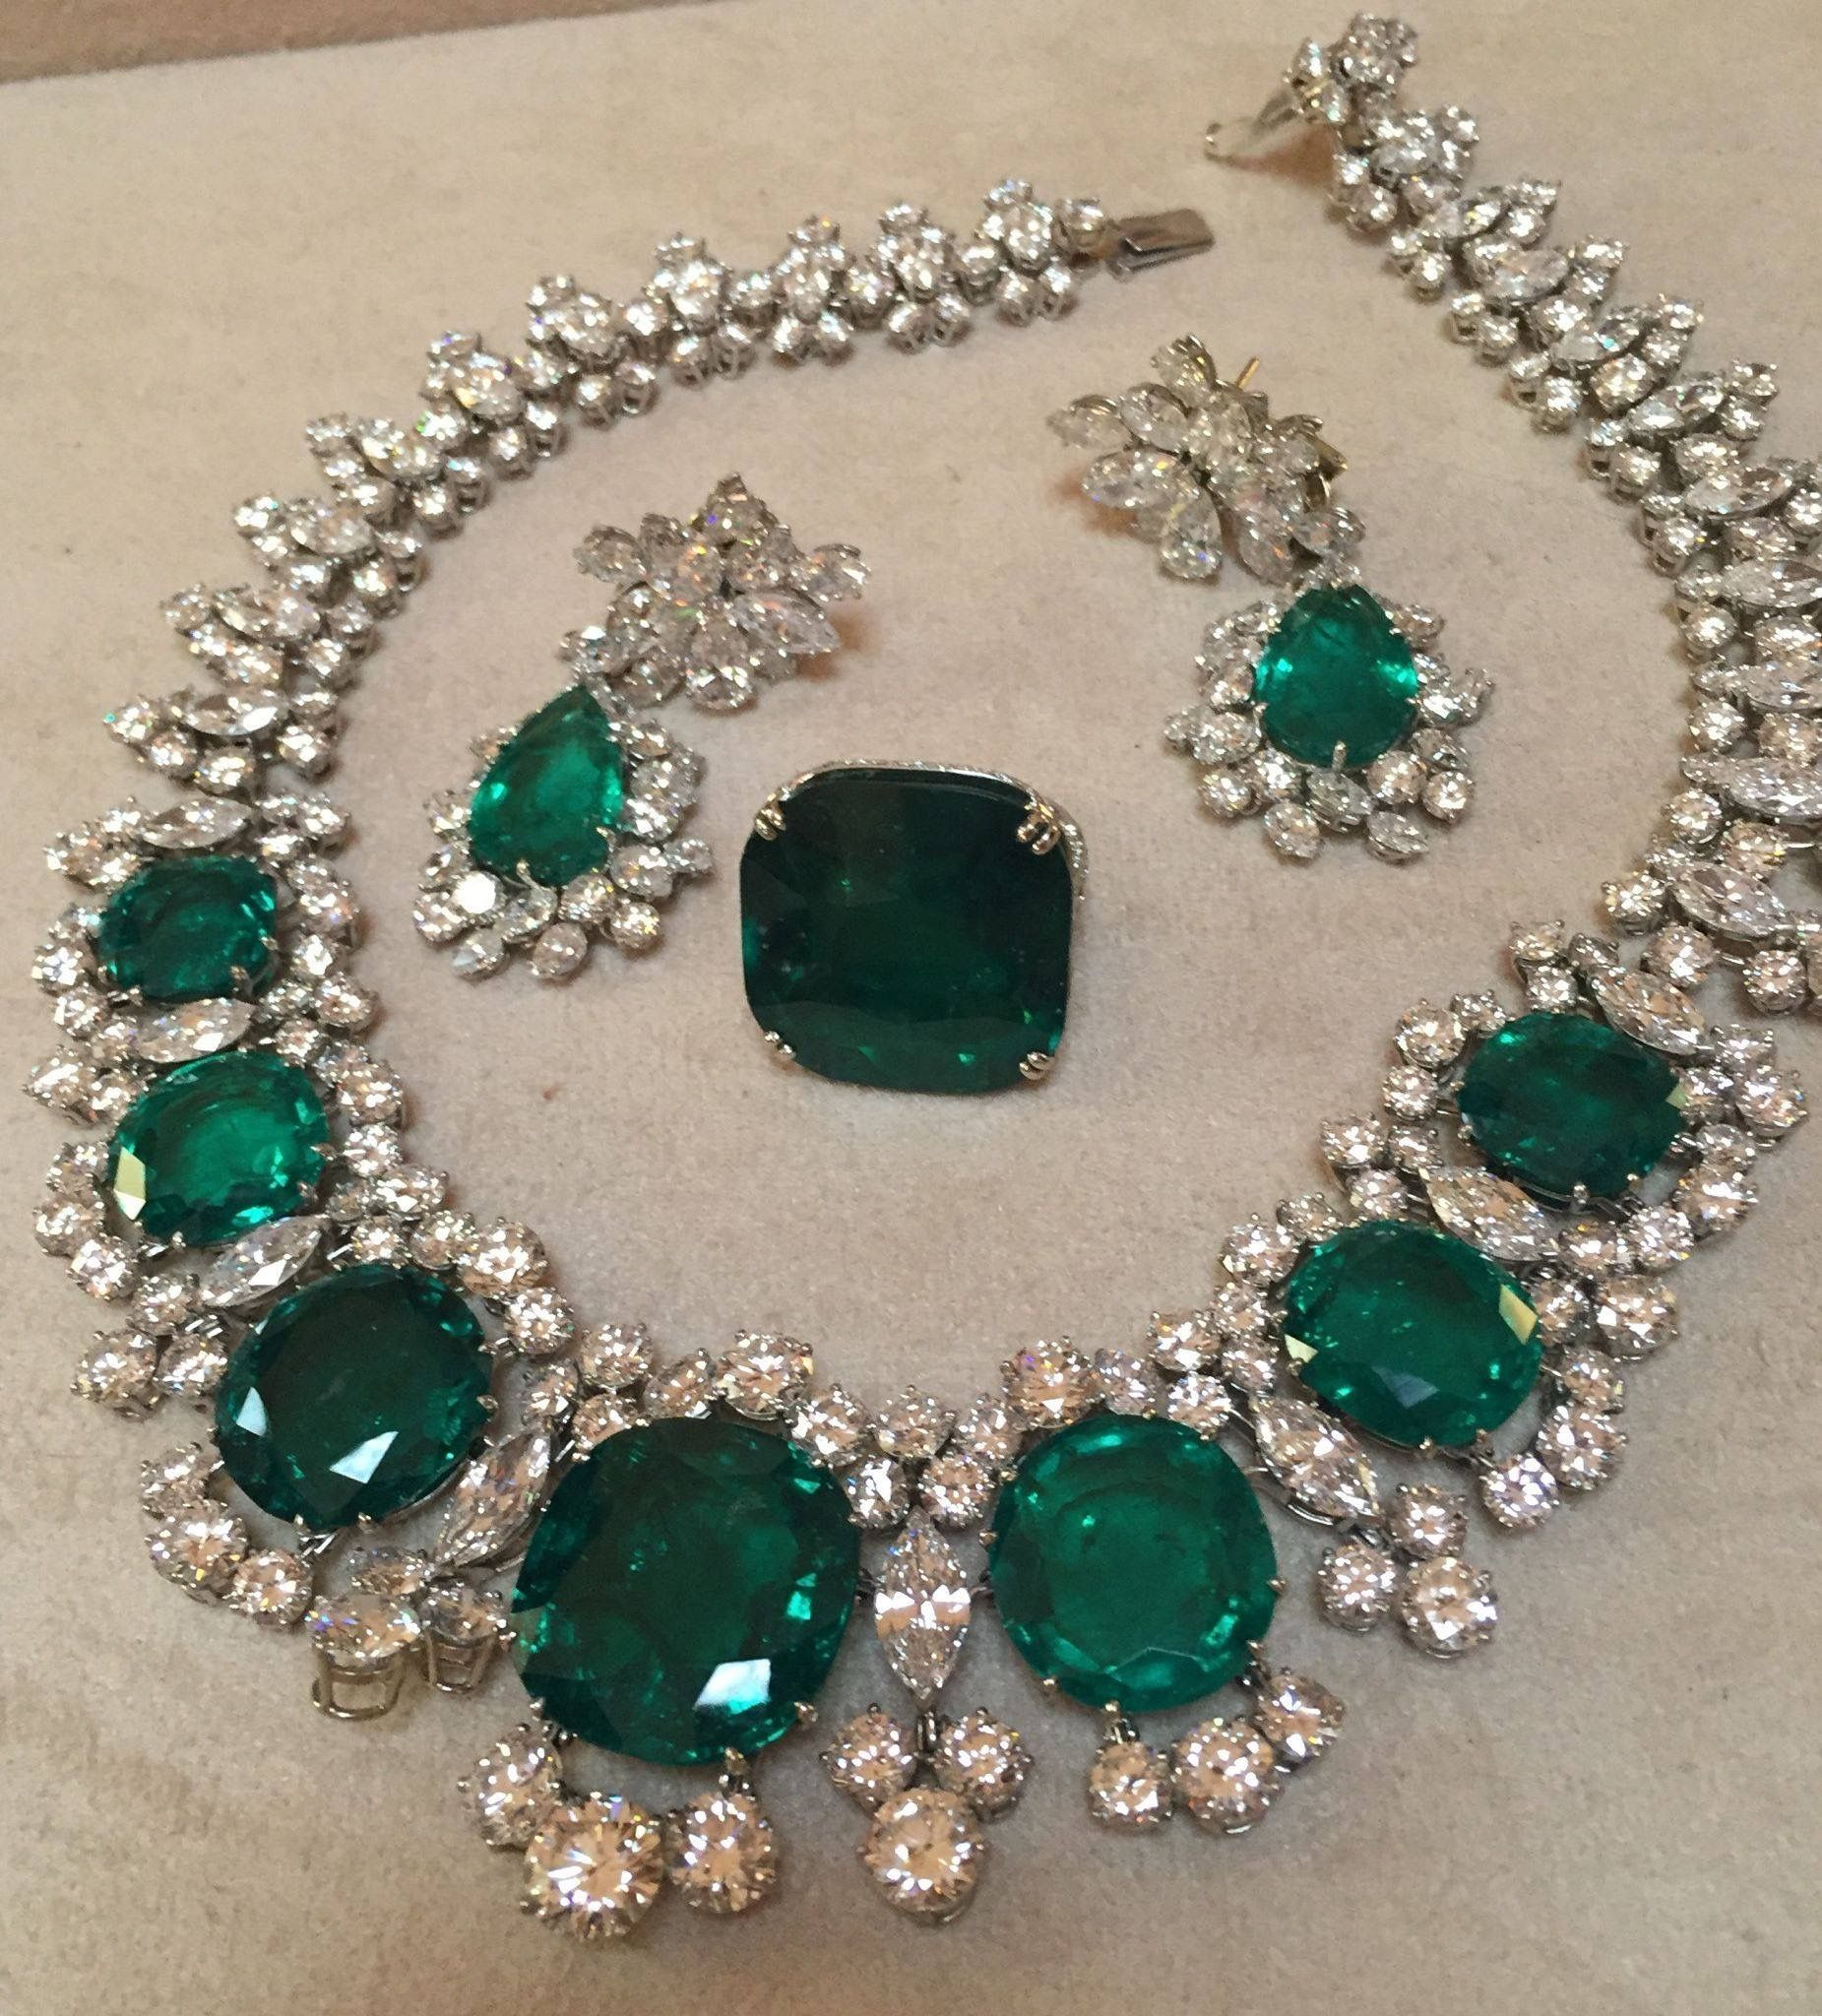 Jewels from the Collection of Gina Lollobrigida